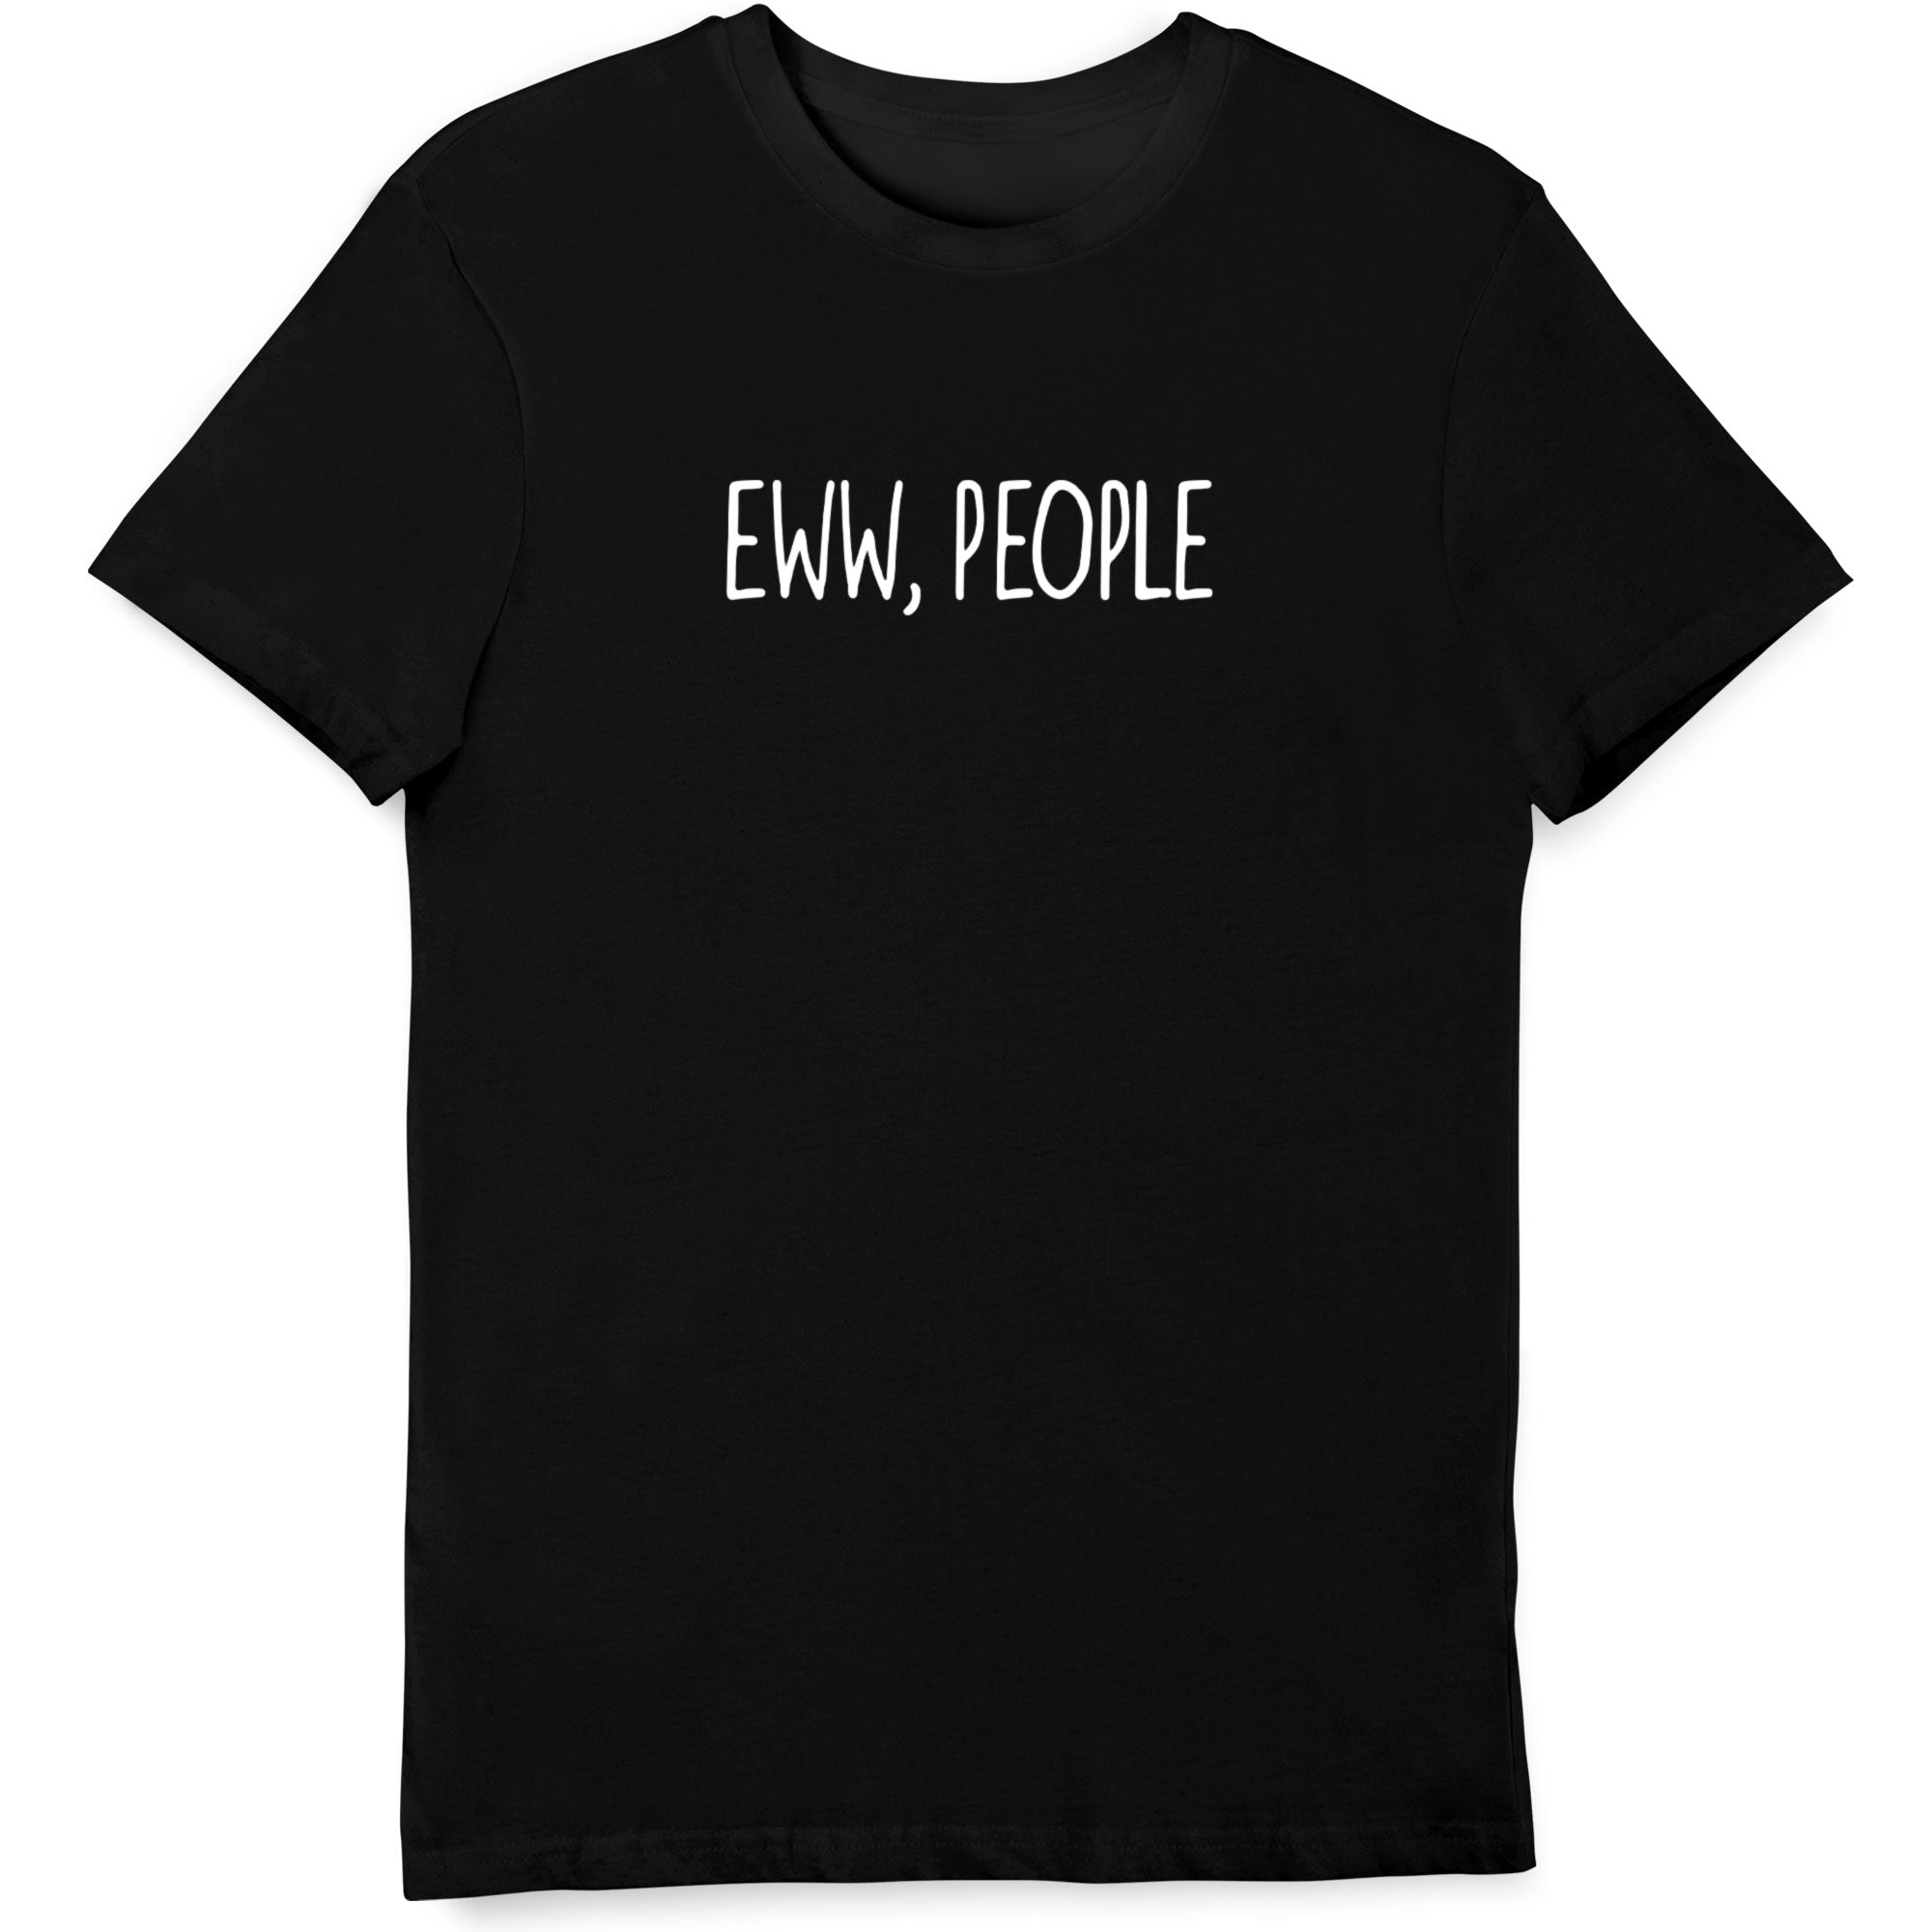 Eww People T Shirt